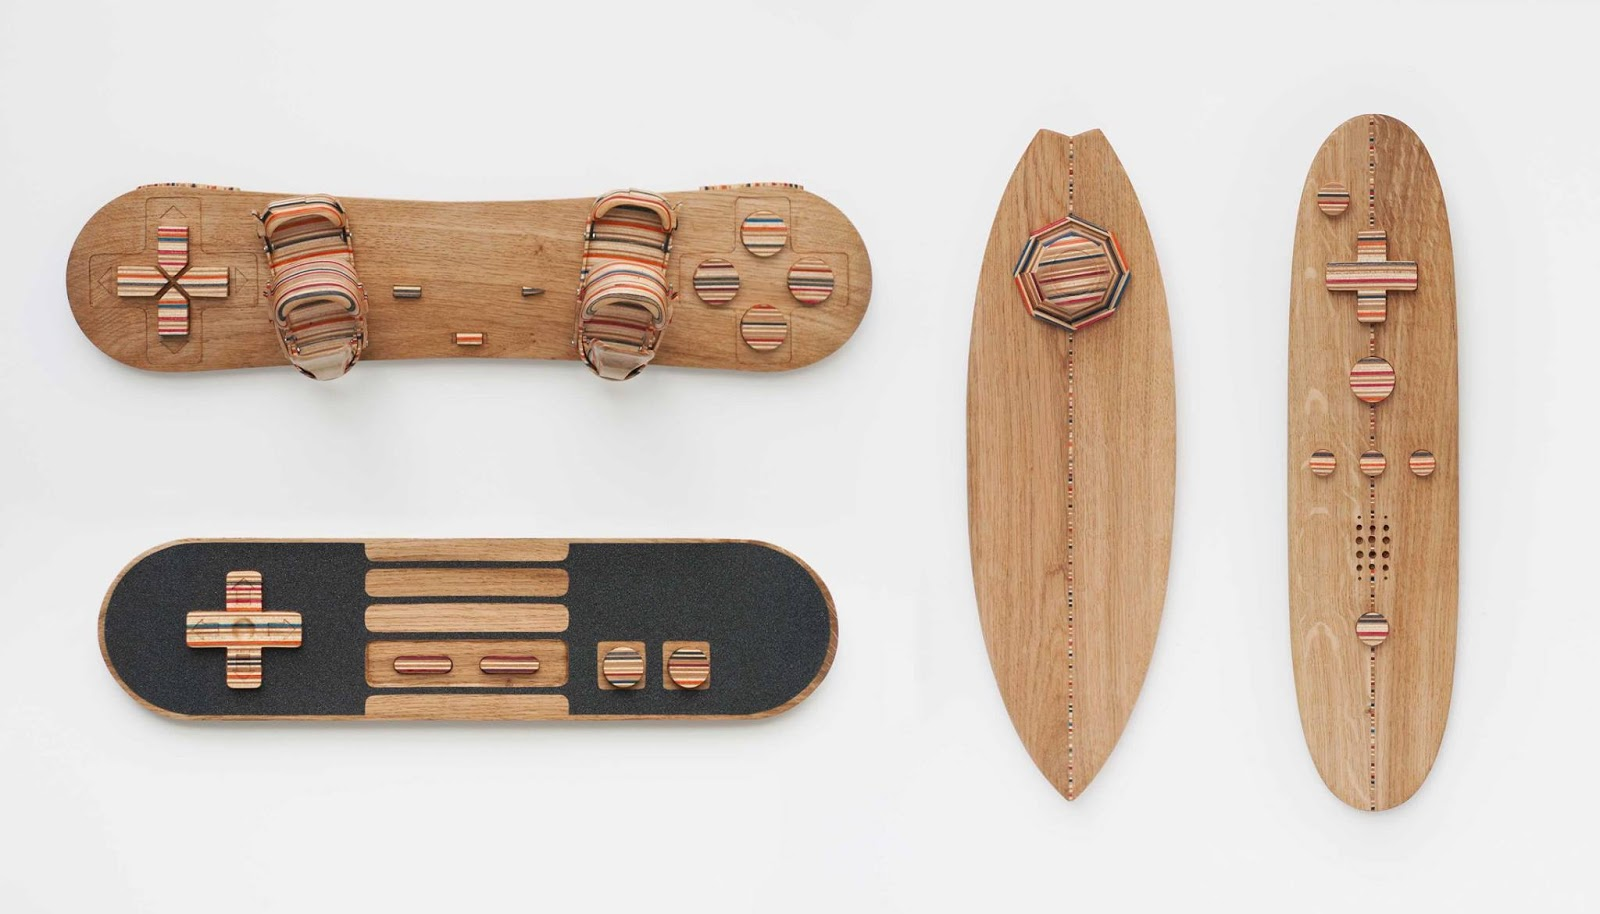 Ride/Play Kunstwerke aus Holz von Baptiste Tavitian | Wohndesign at its Best